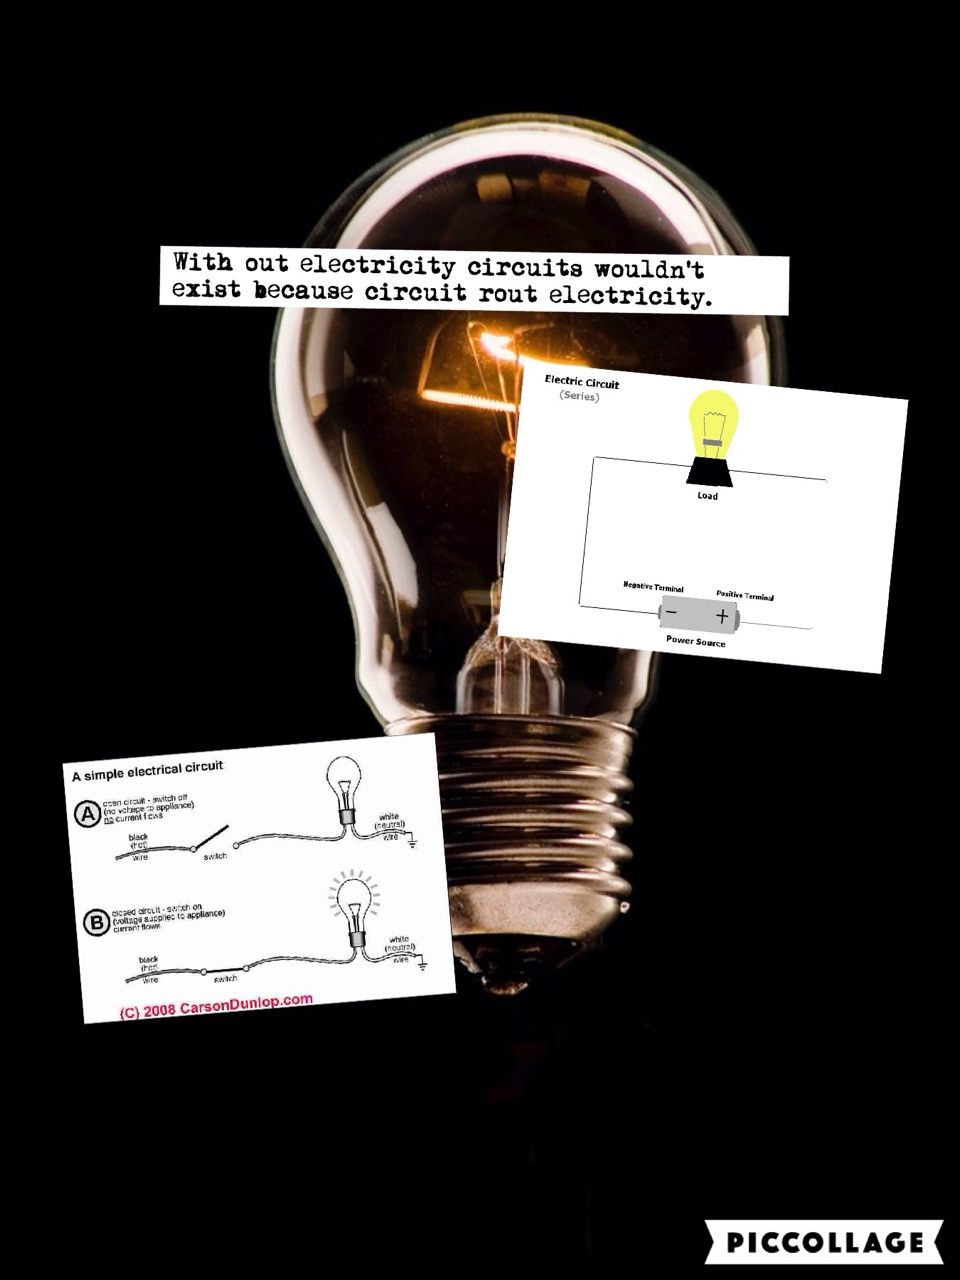 An Interactive Image Simple Electric Circuits Electrical Circuit